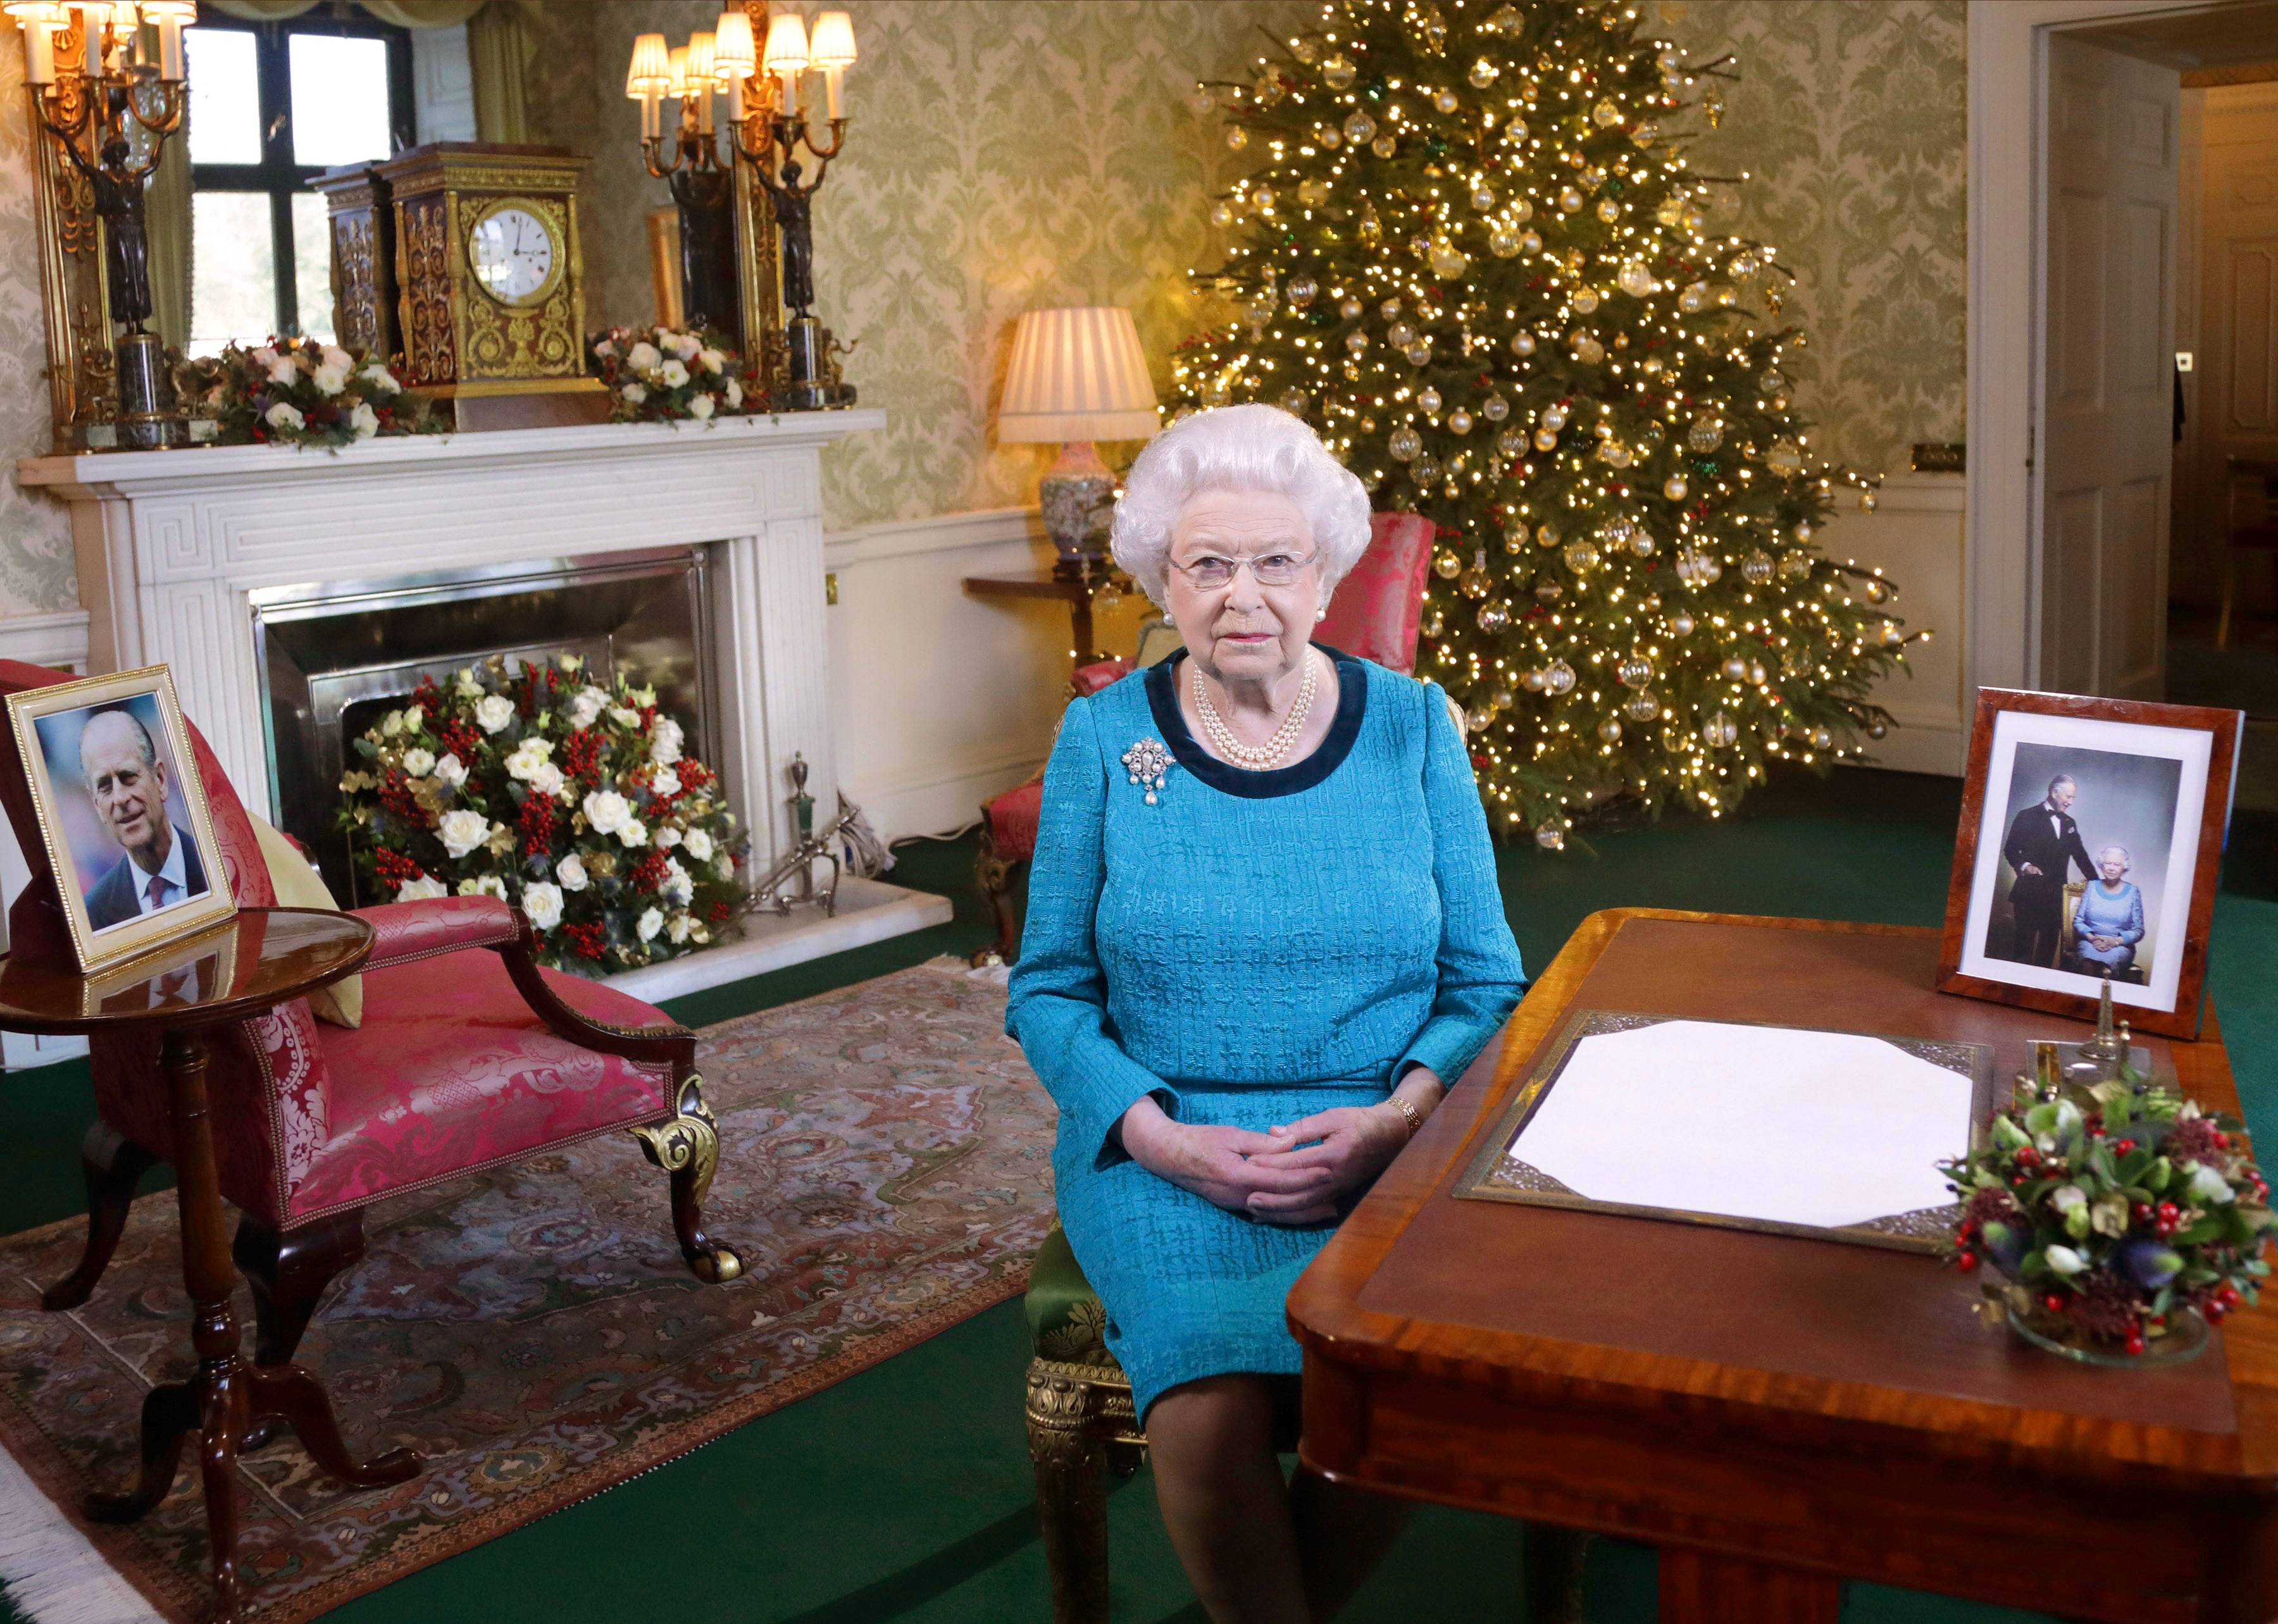 Queen Elizabeth II sits at a desk in the Regency Room after recording her Christmas Day broadcast to the Commonwealth at Buckingham Palace on December 24, 2016 in London, England.